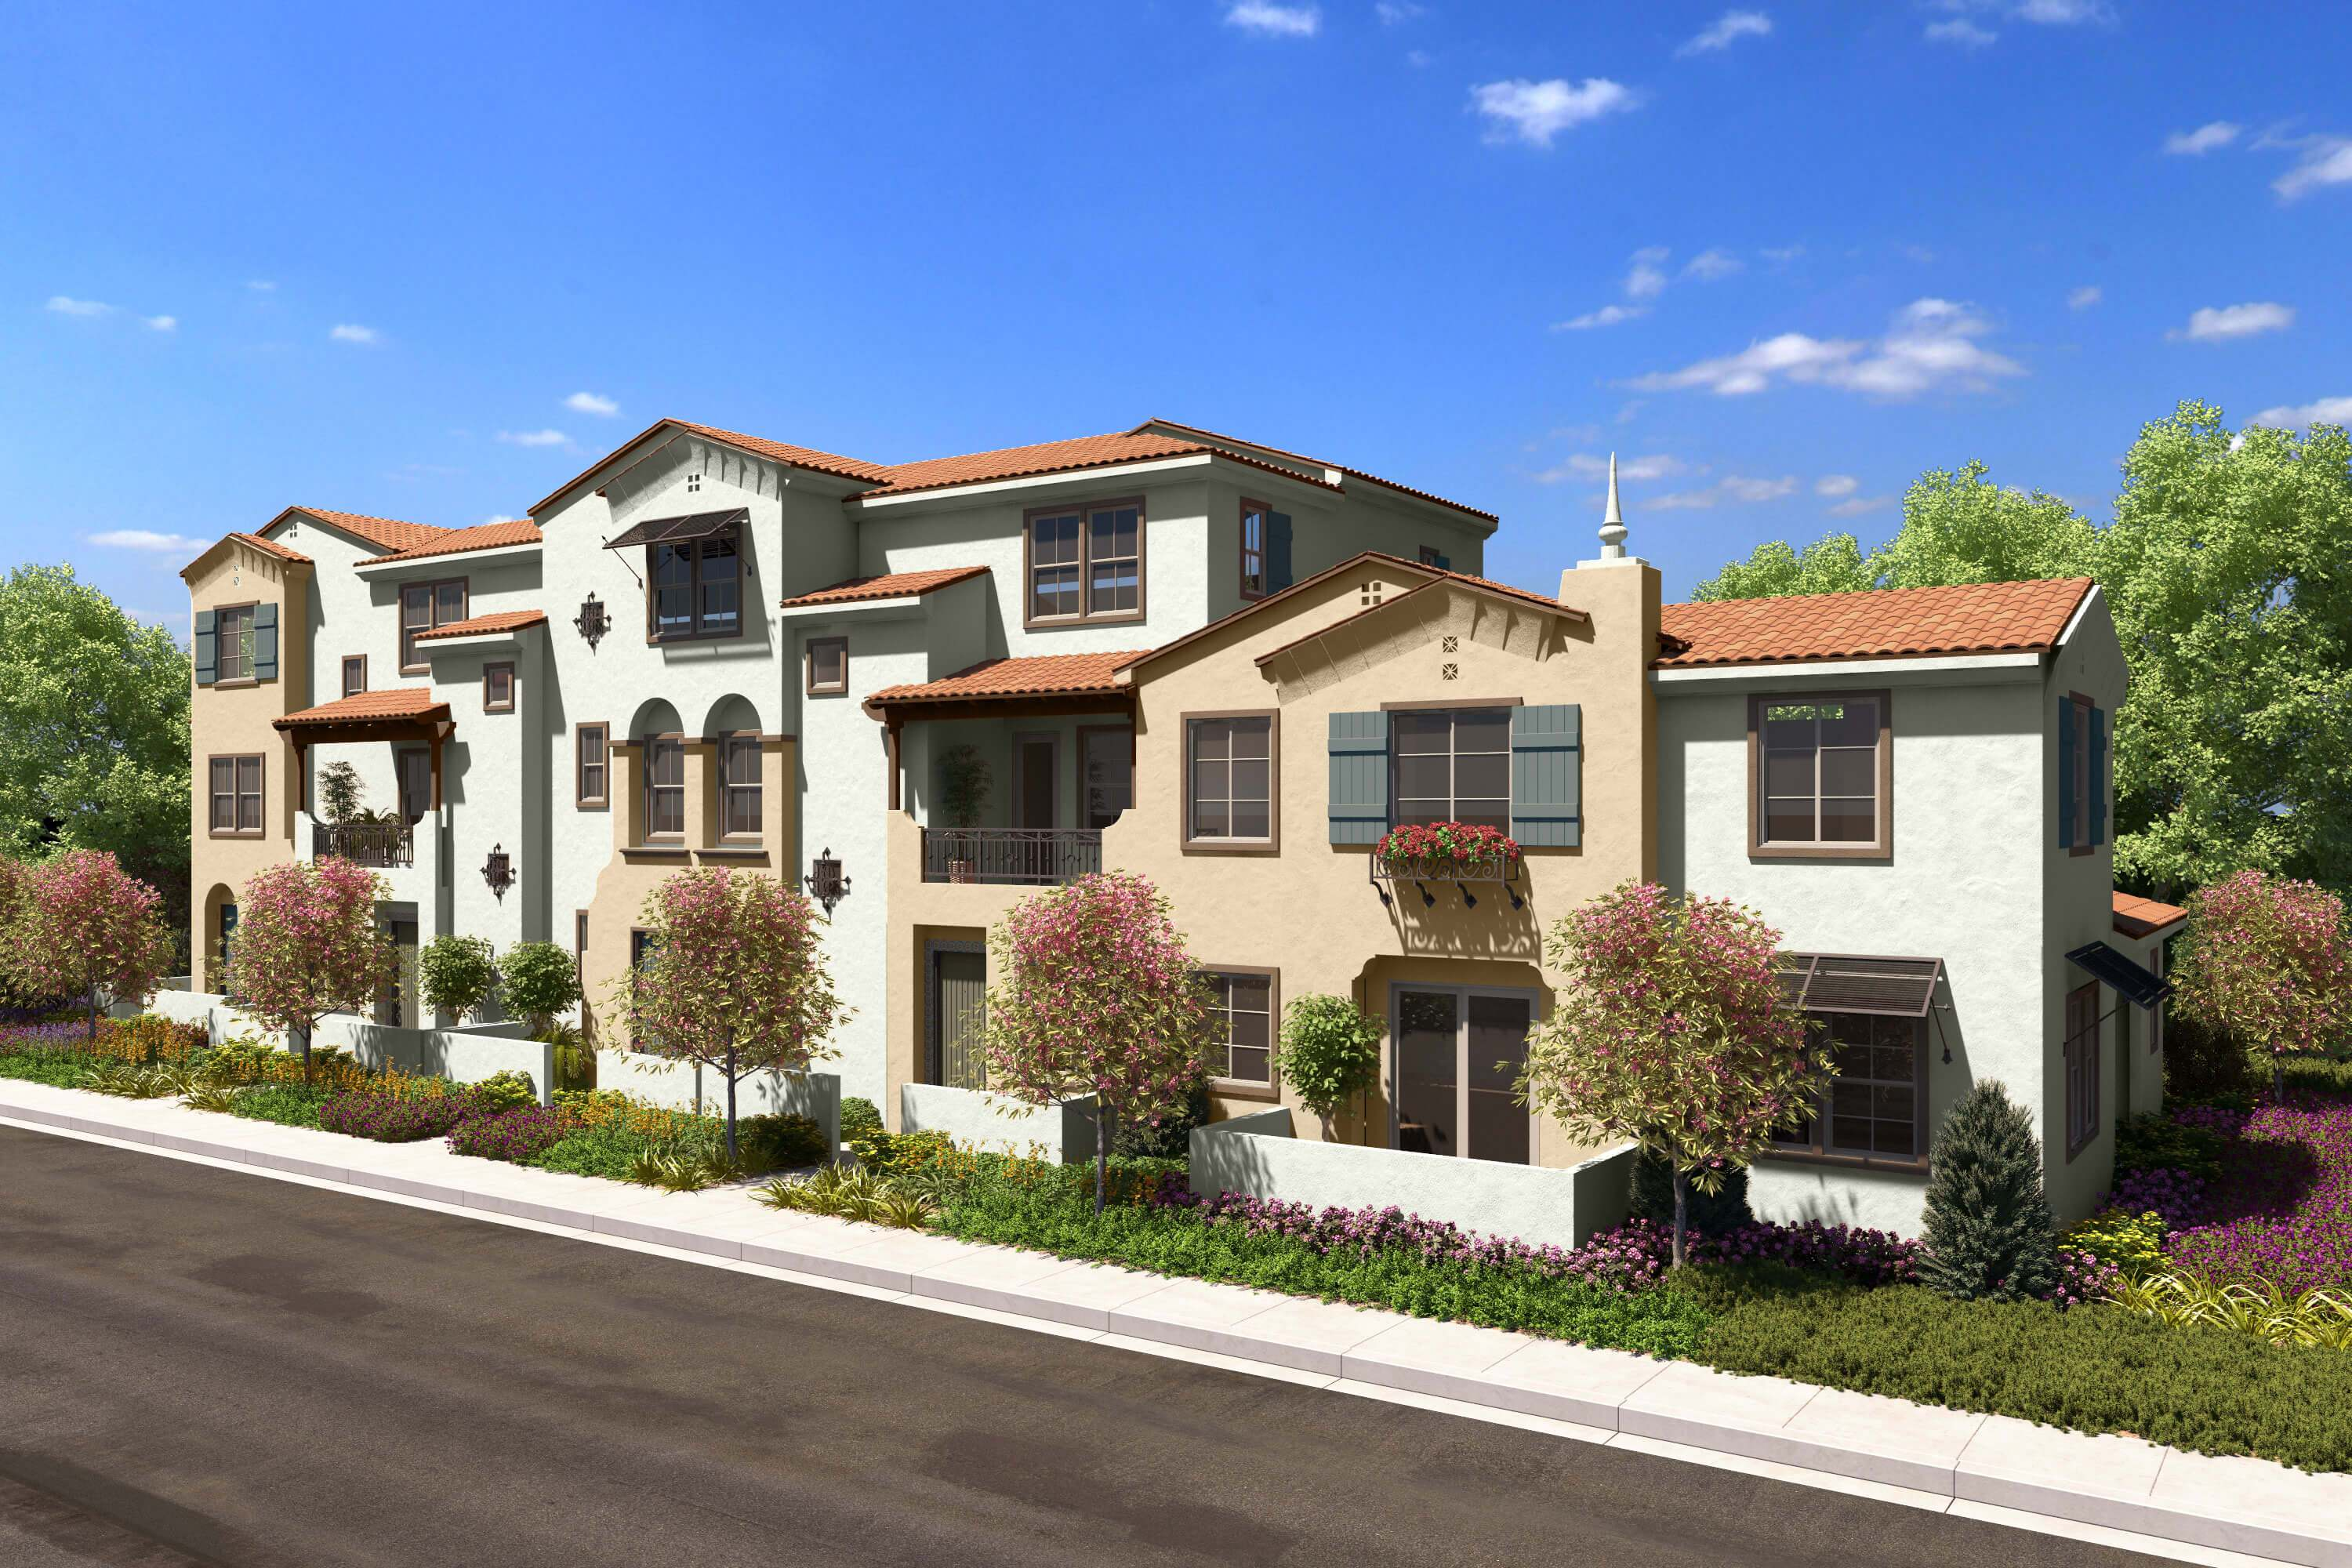 Multi Family for Sale at Citrus Pointe At The Orchards - Residence 3x 192 Sultana Avenue Upland, California 91786 United States